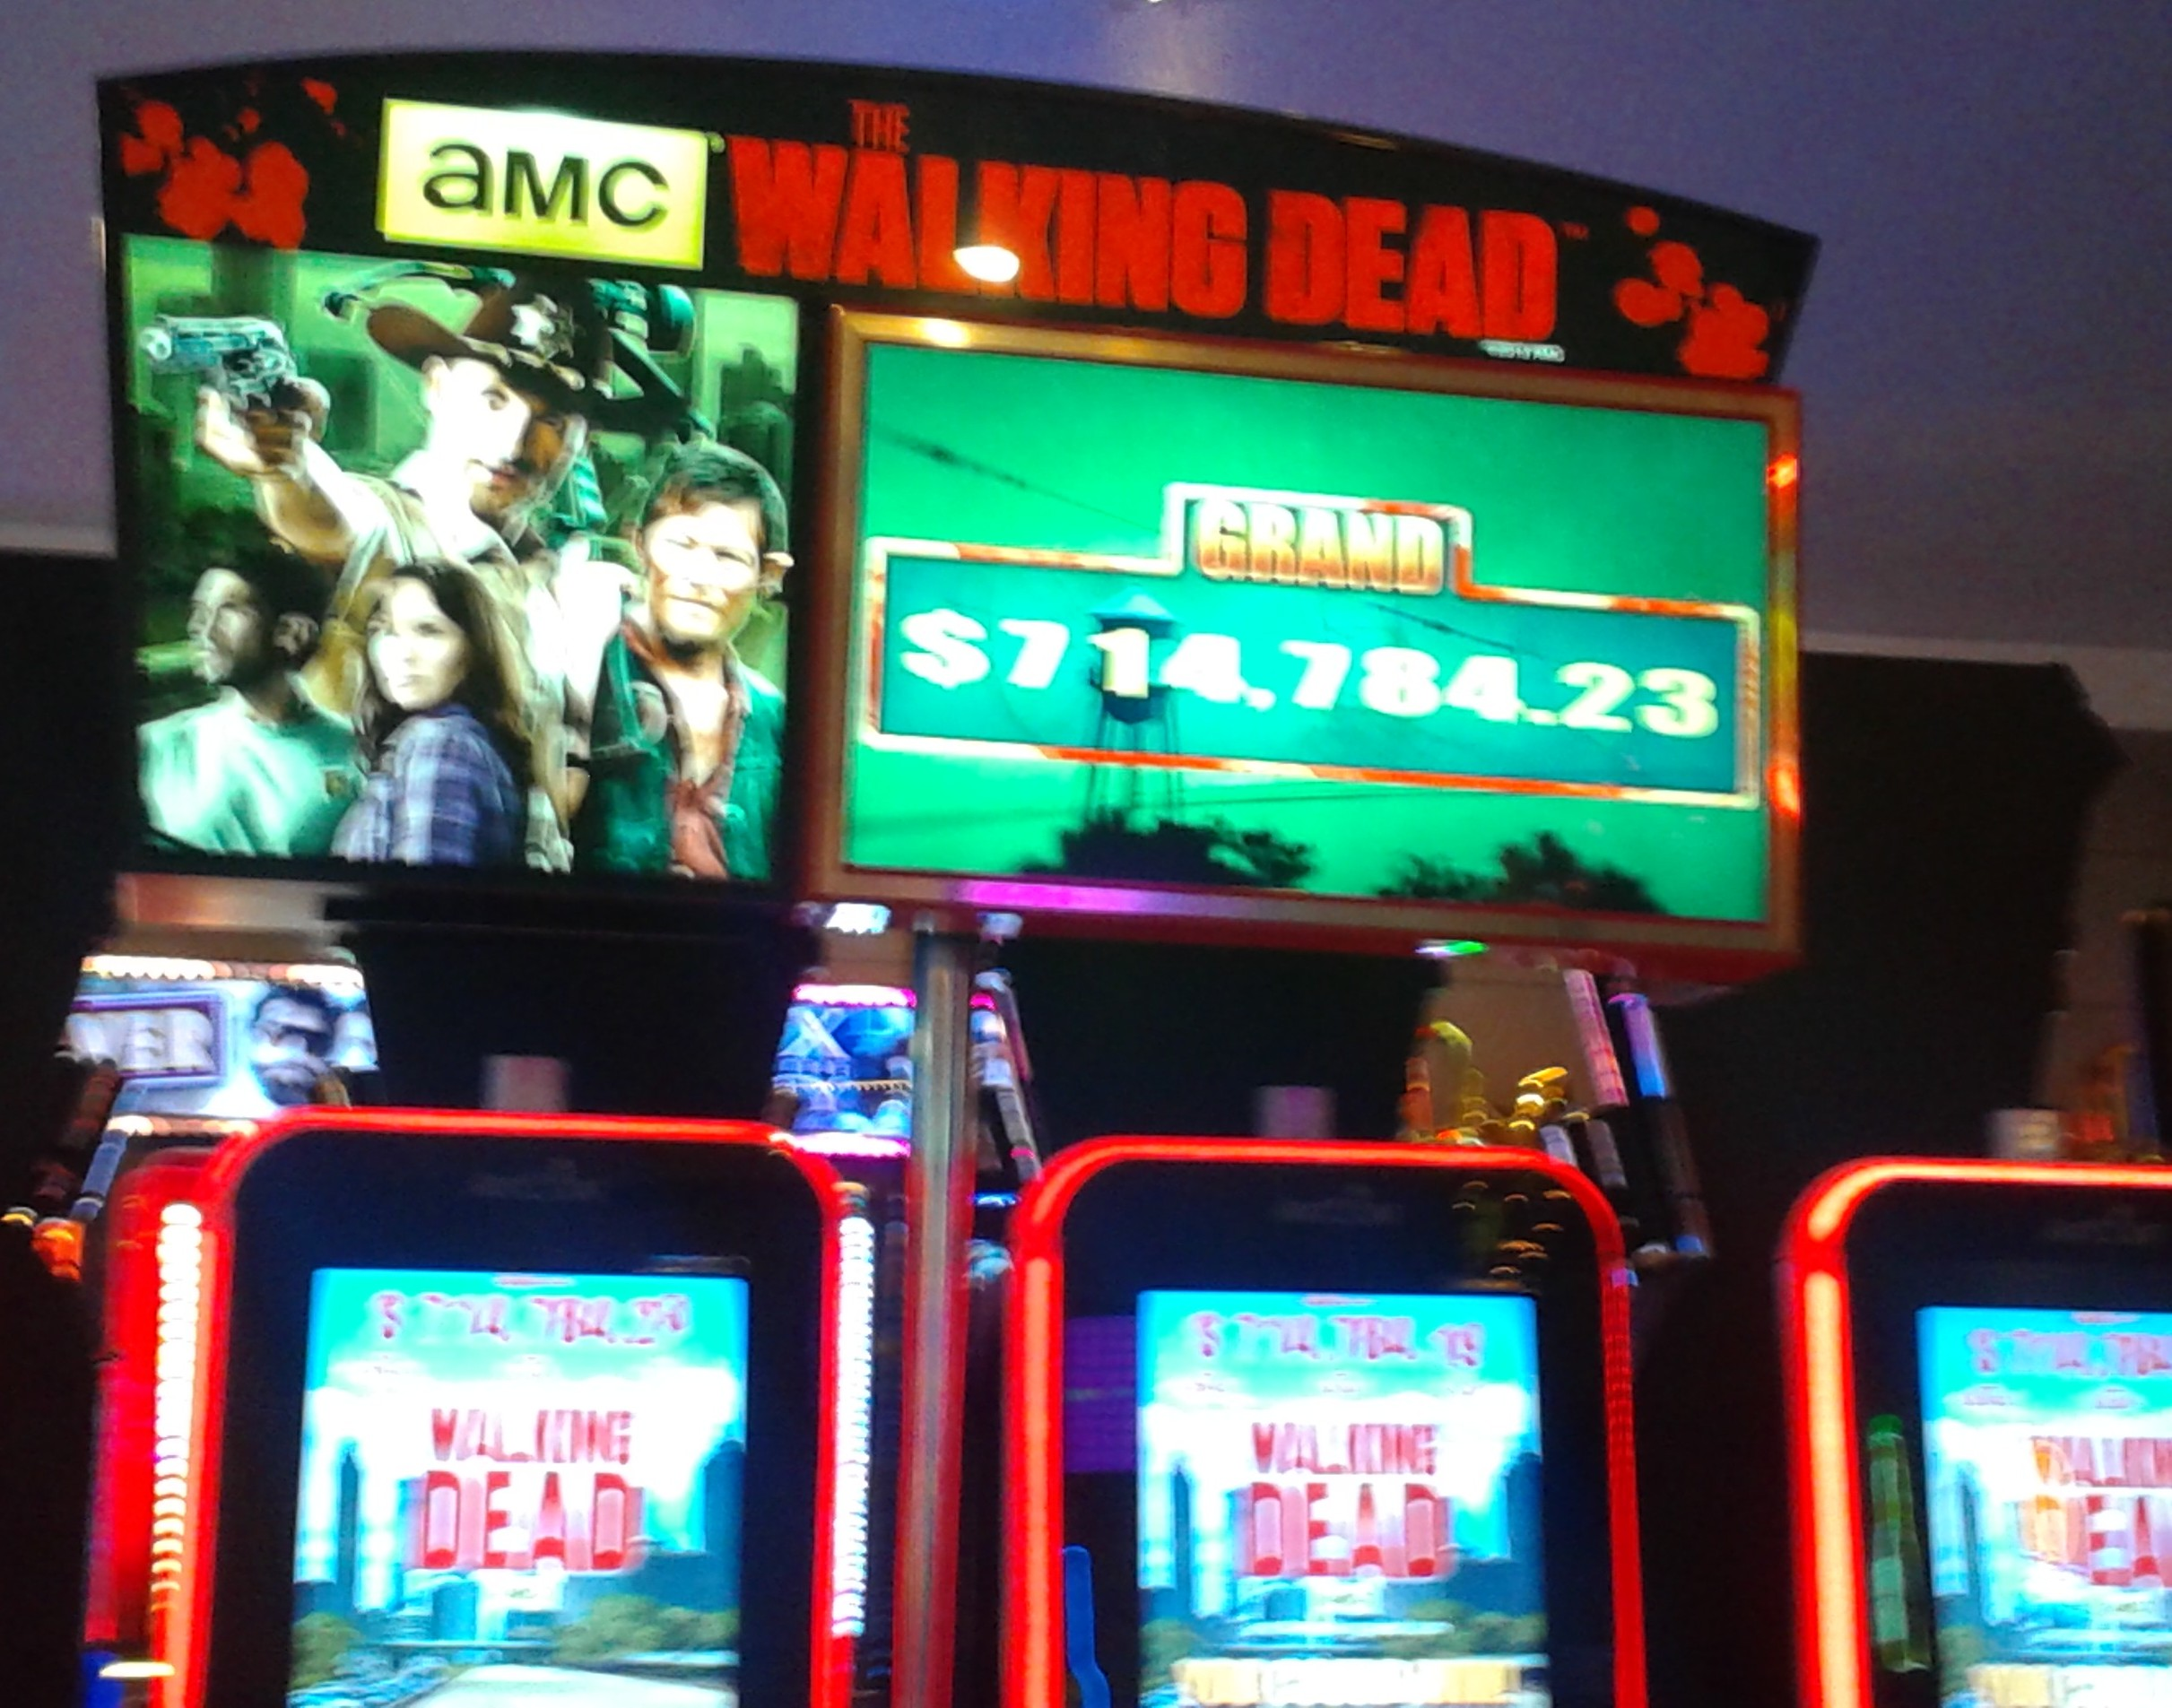 family guy slot machine app that pays you to walk